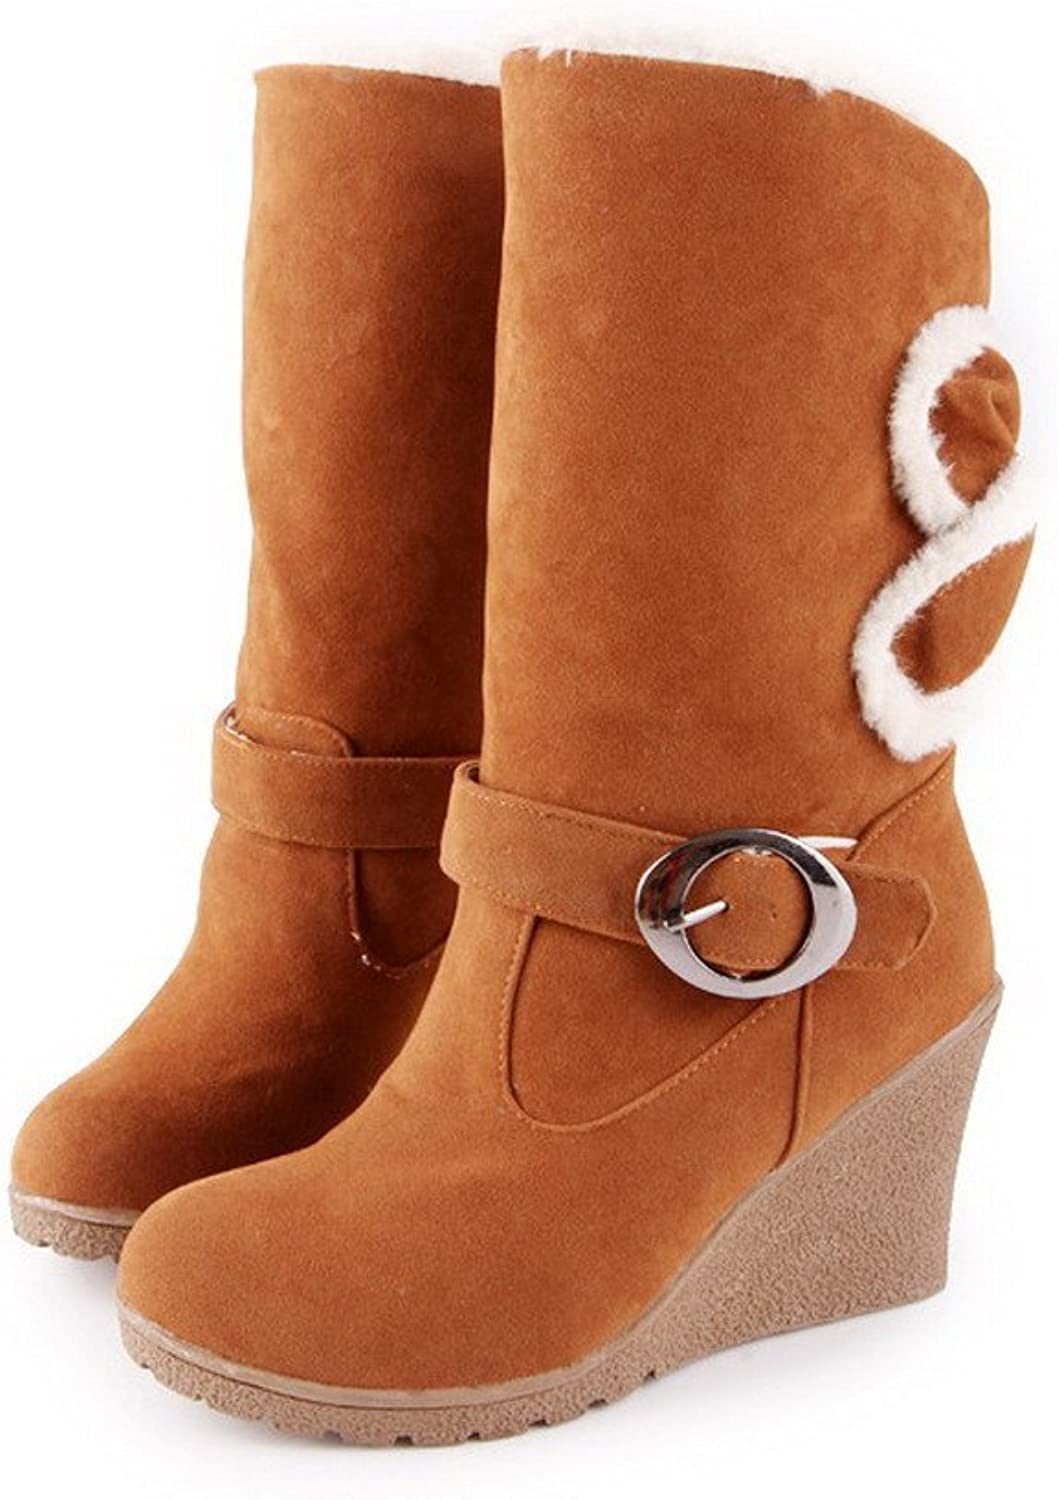 WeenFashion Womens Round Closed Toe High Heels PU Frosted Short Plush Solid Boots with Buckle and Bows